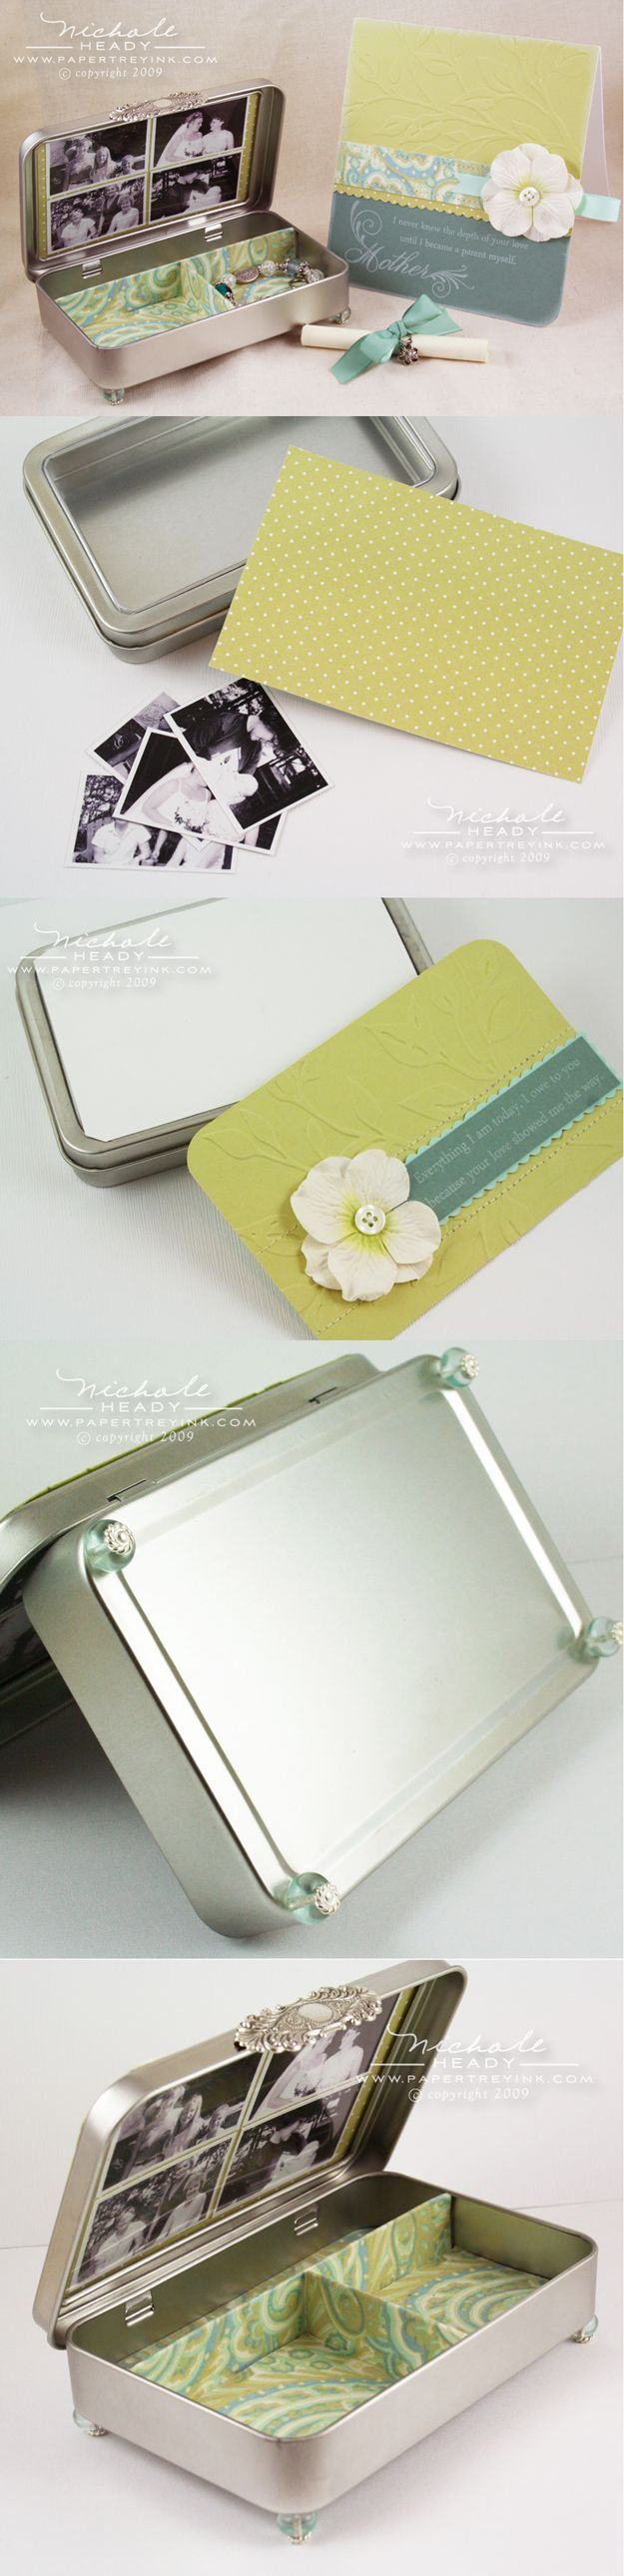 81 best diy mothers day gifts images on pinterest ideas for 36 homemade mothers day gifts and ideas diy solutioingenieria Images